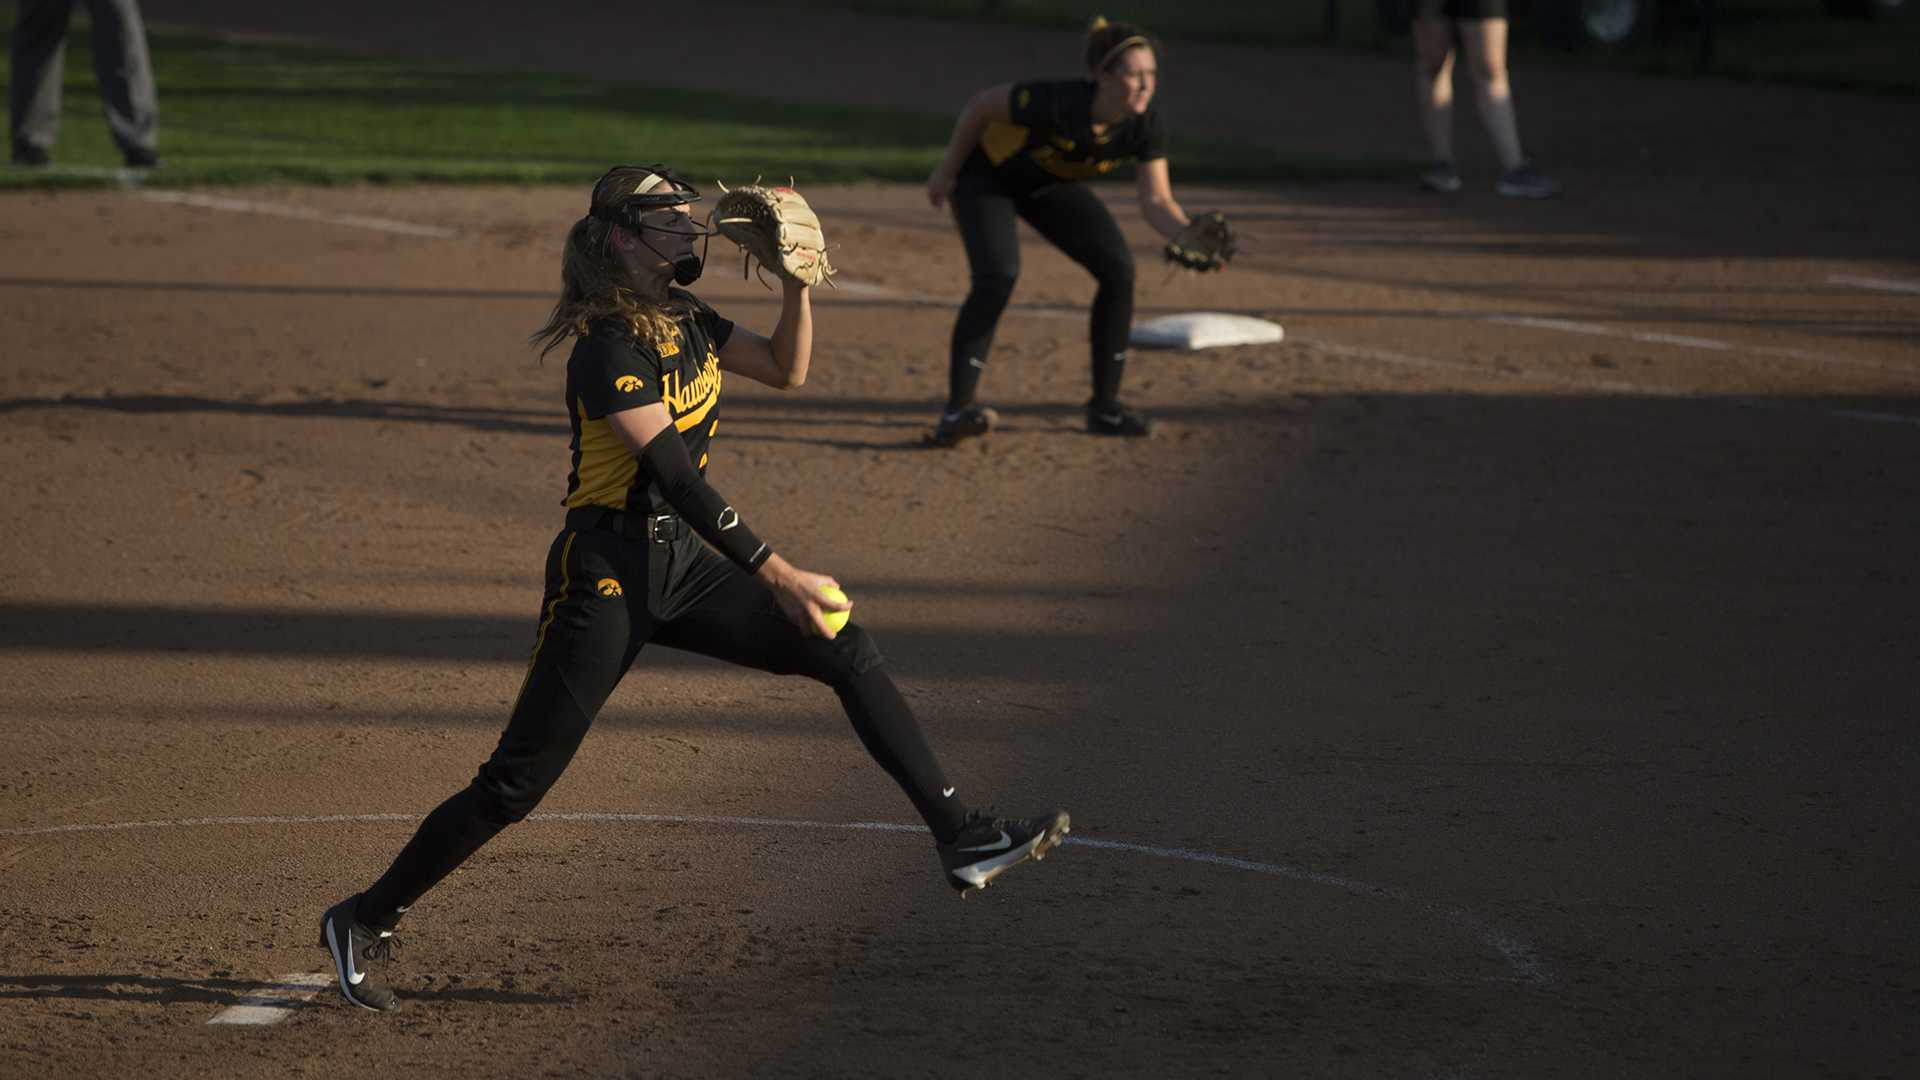 Allison Doocy pitches for the Hawks at the Pearl Field Hawkeye Softball complex on Friday, Sept. 22, 2017. Hawkeyes defeated Kirkwood Community College 5-3. (Ashley Morris/The Daily Iowan)